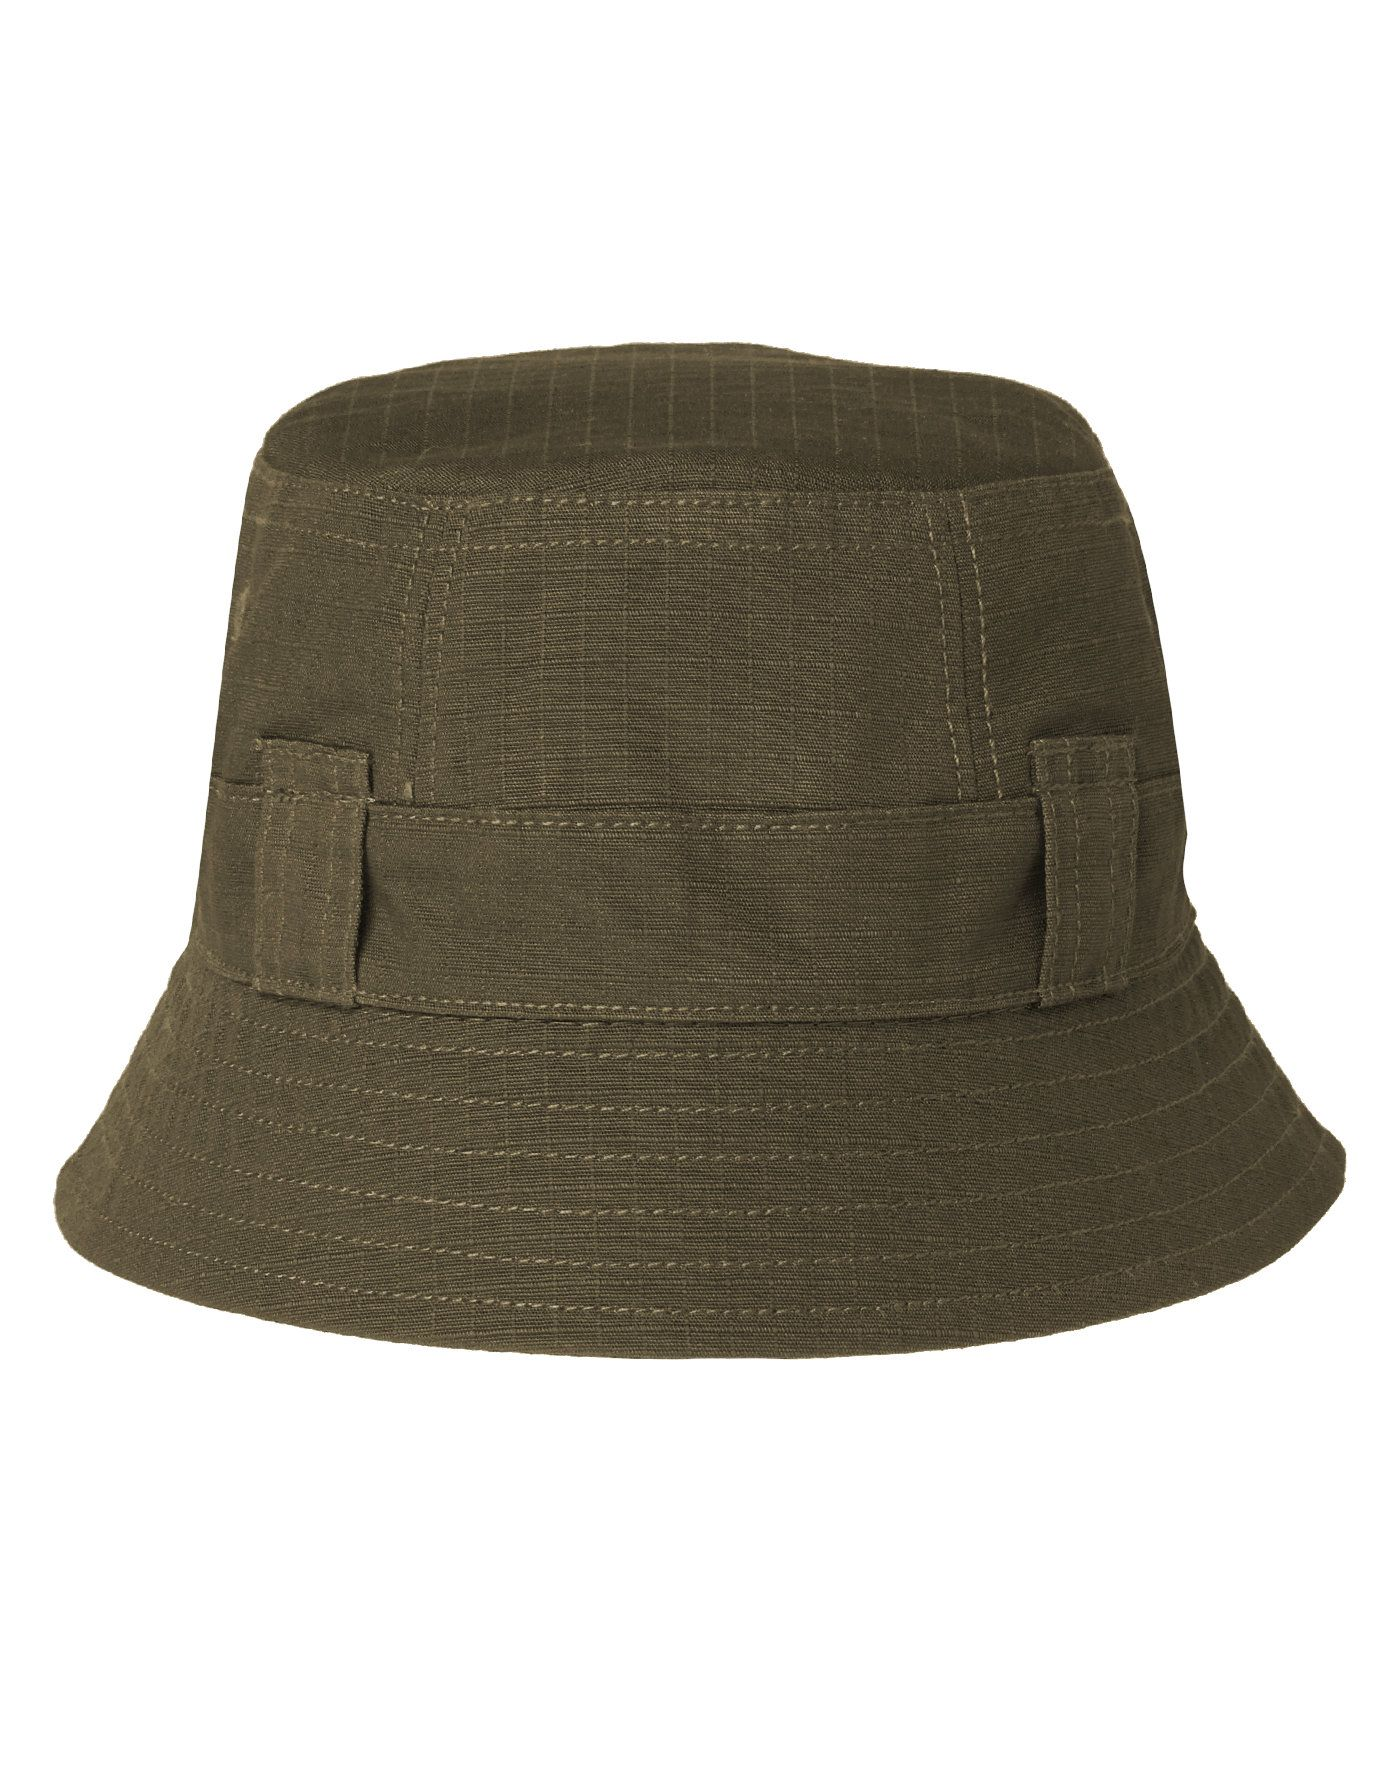 a12b9a9637169 Bucket Hat at Gymboree Collection Name  Desert Explorer (2015 ...